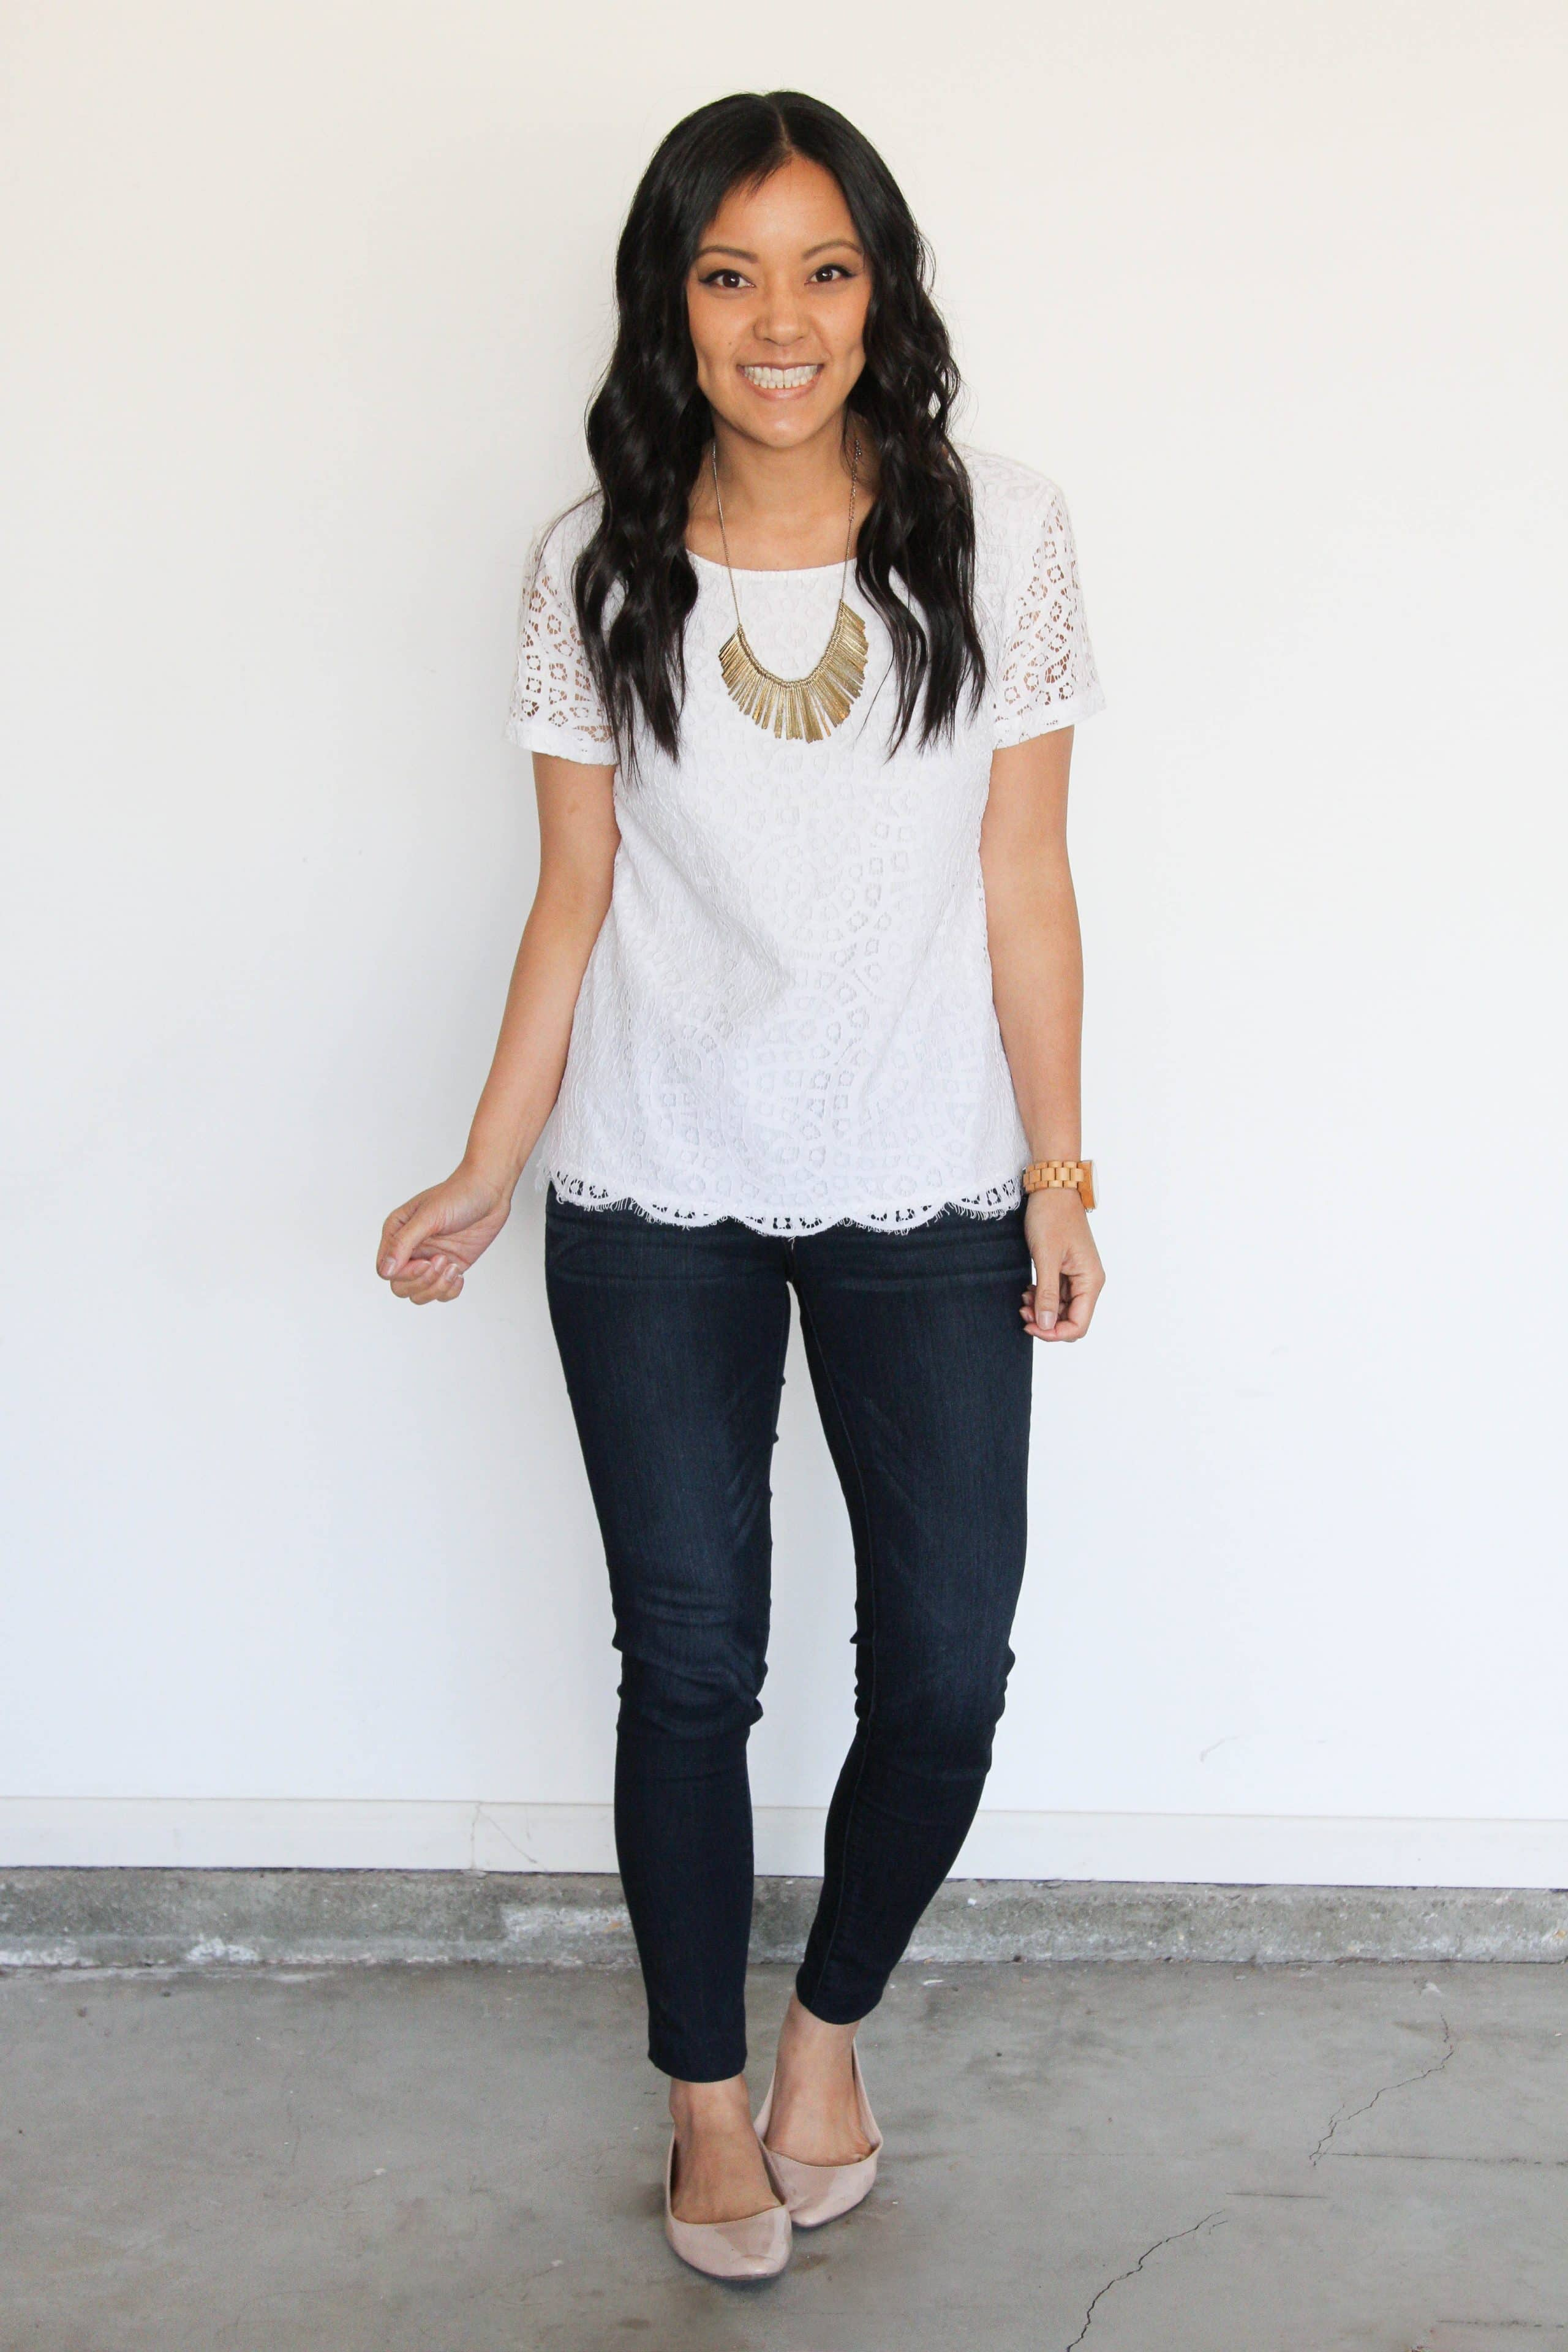 white lace tee + jeans + nude flats + metallic statement necklace